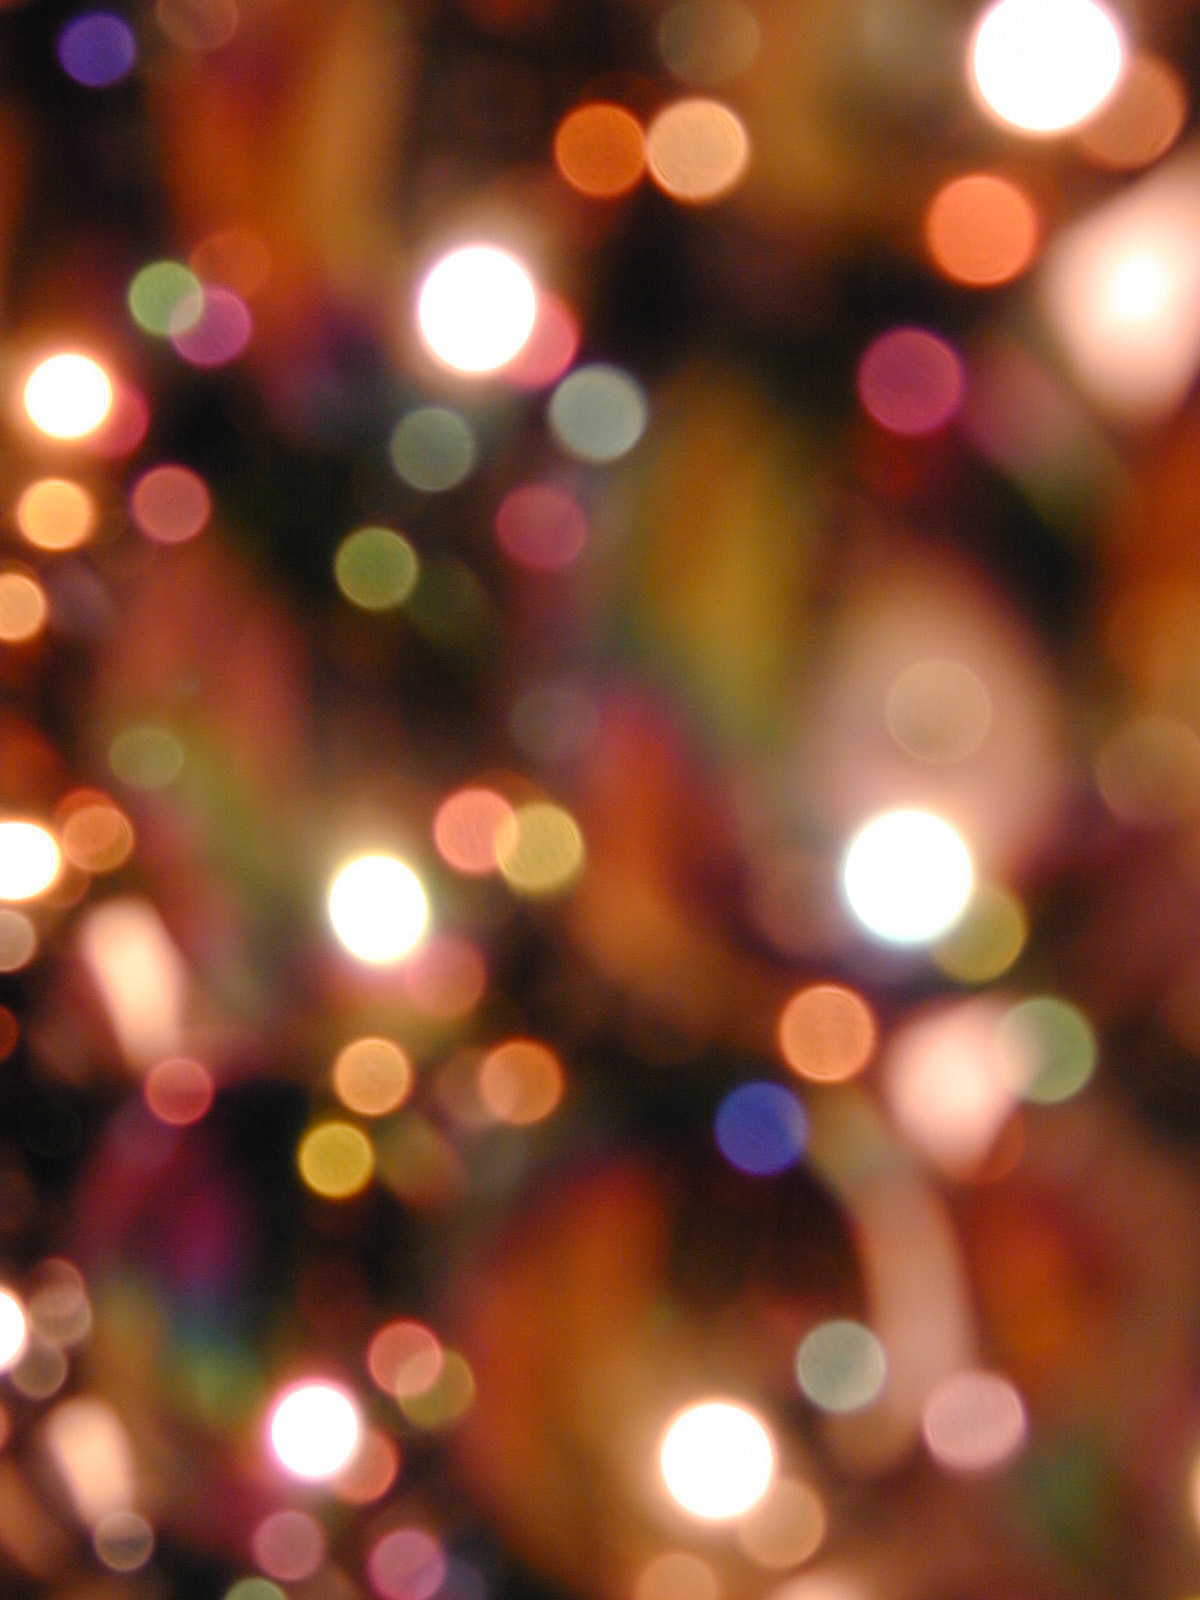 free image of soft focus of christmas lights and decorations